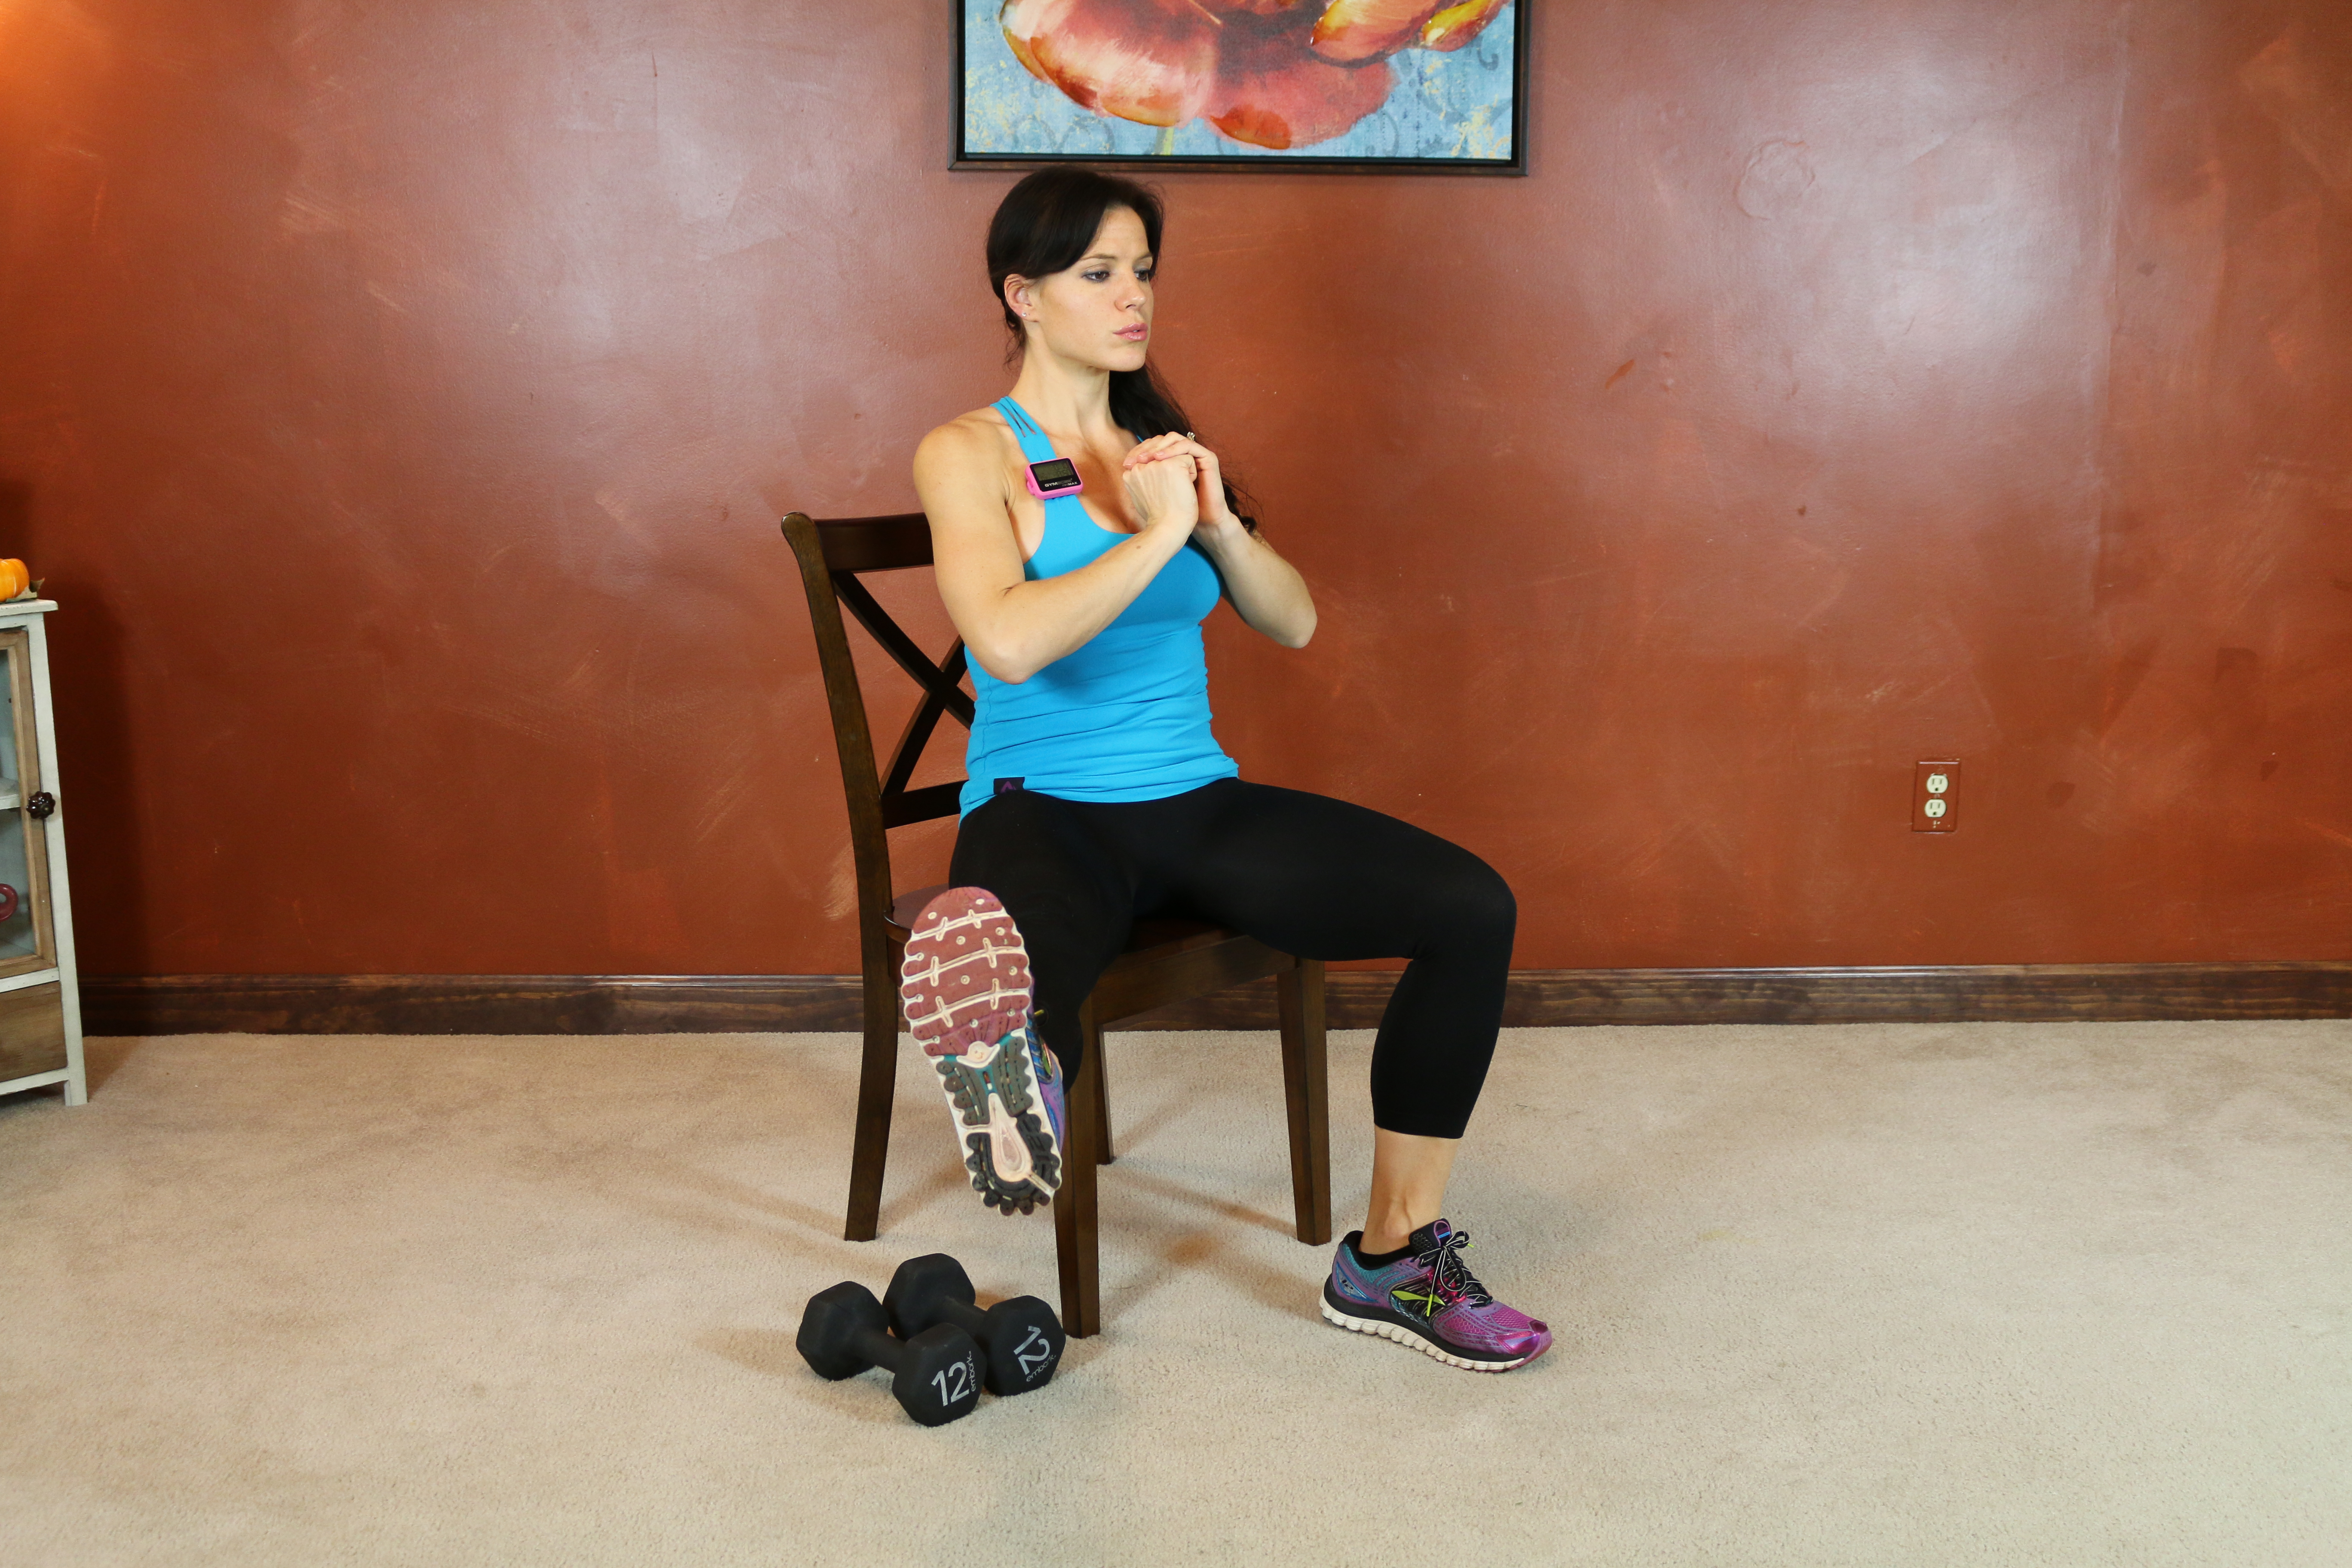 10 Minute Chair Workout Low Impact Arms Abs Legs